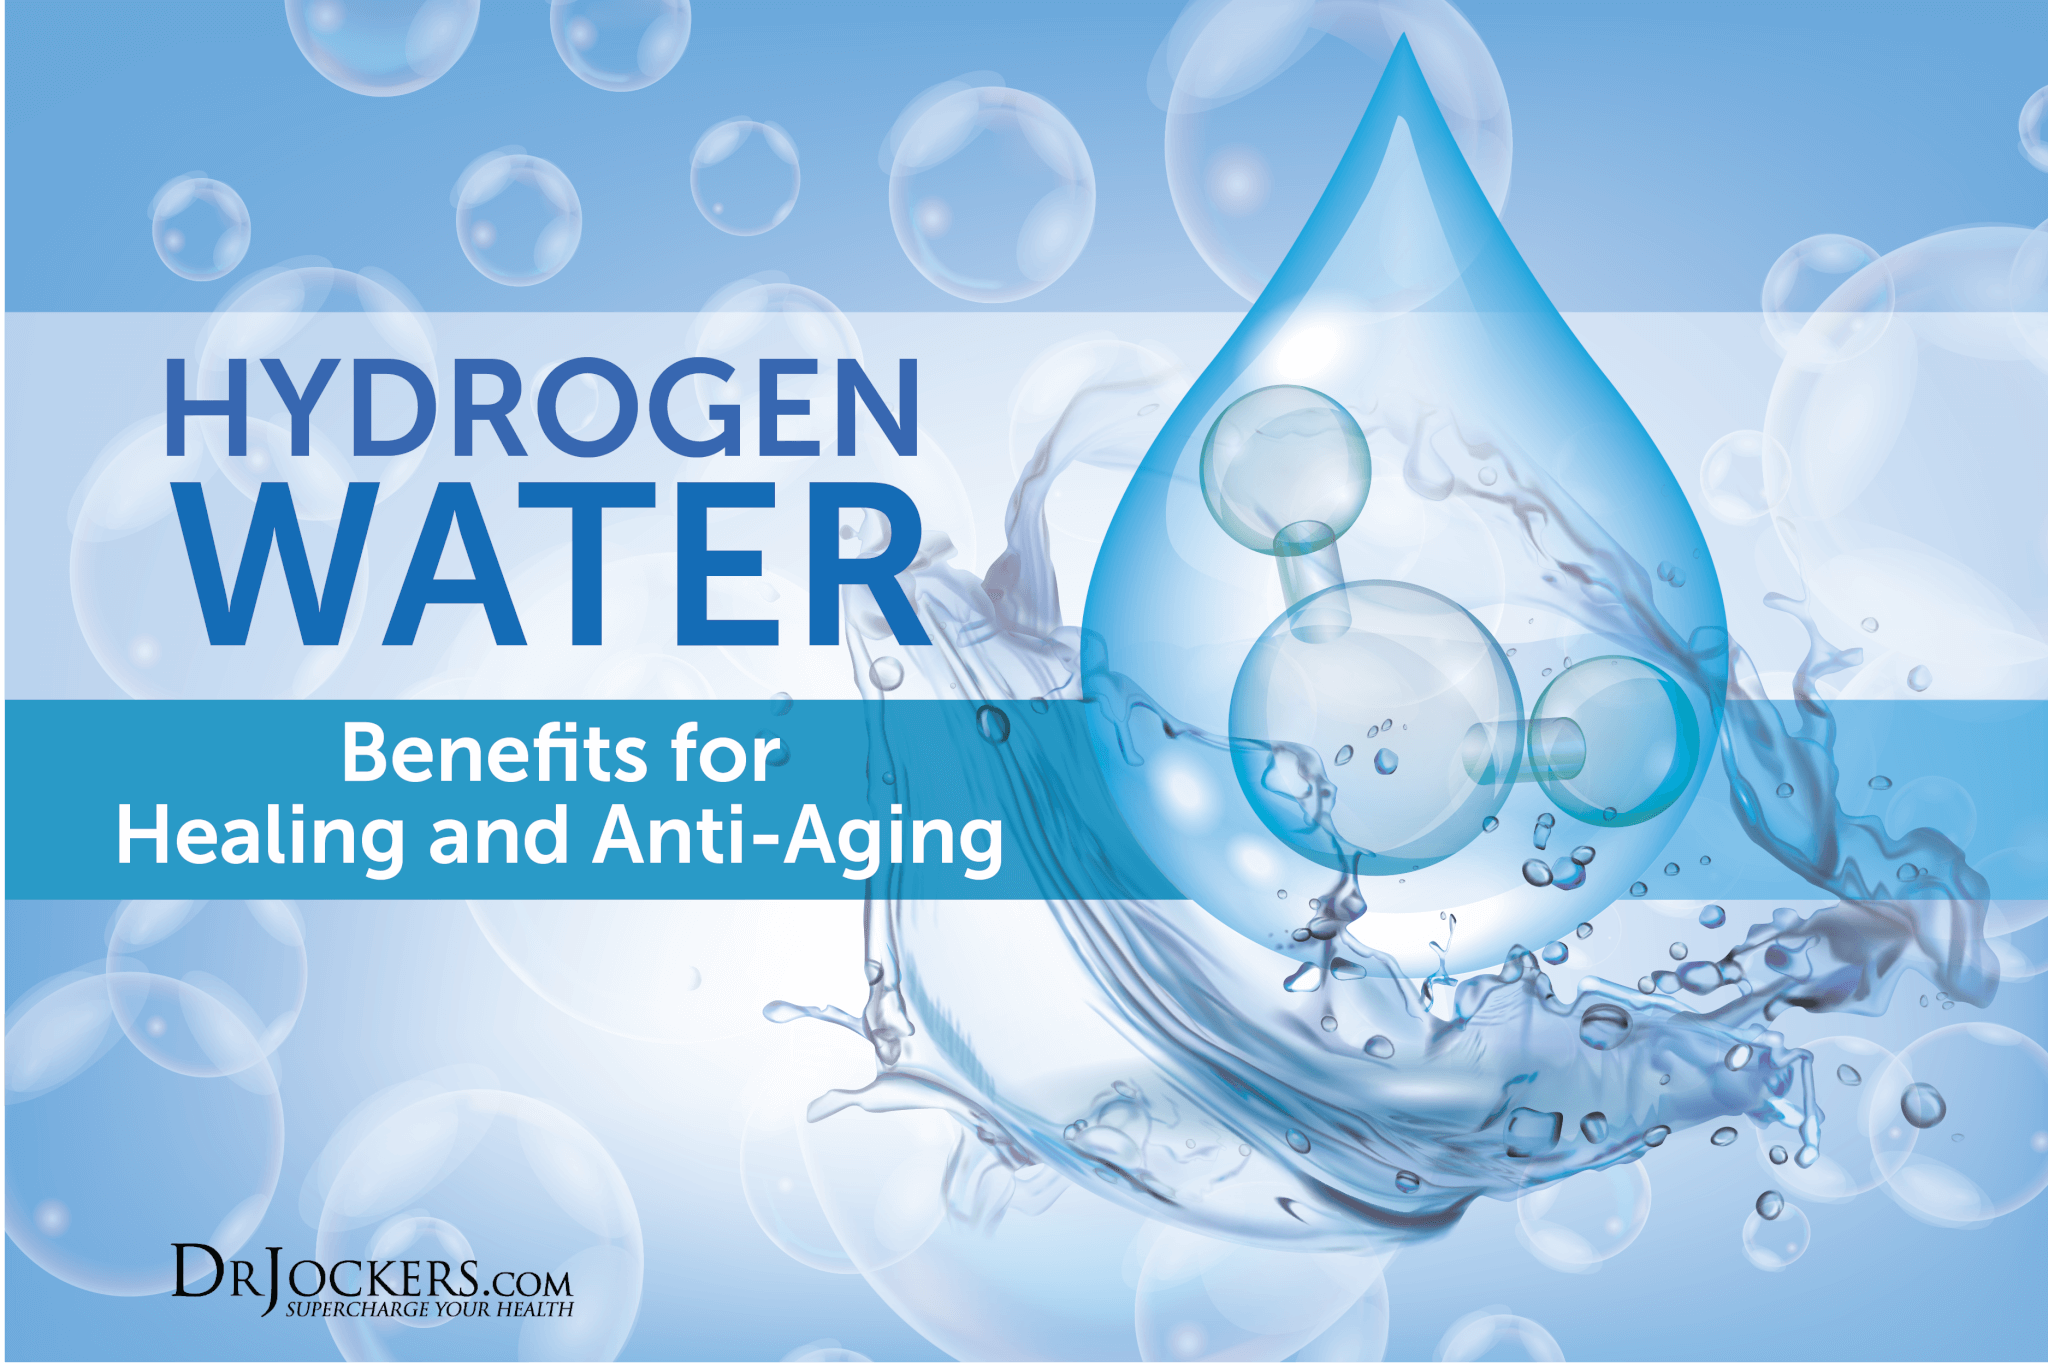 Hydrogen Water: Benefits for Healing and Anti-Aging